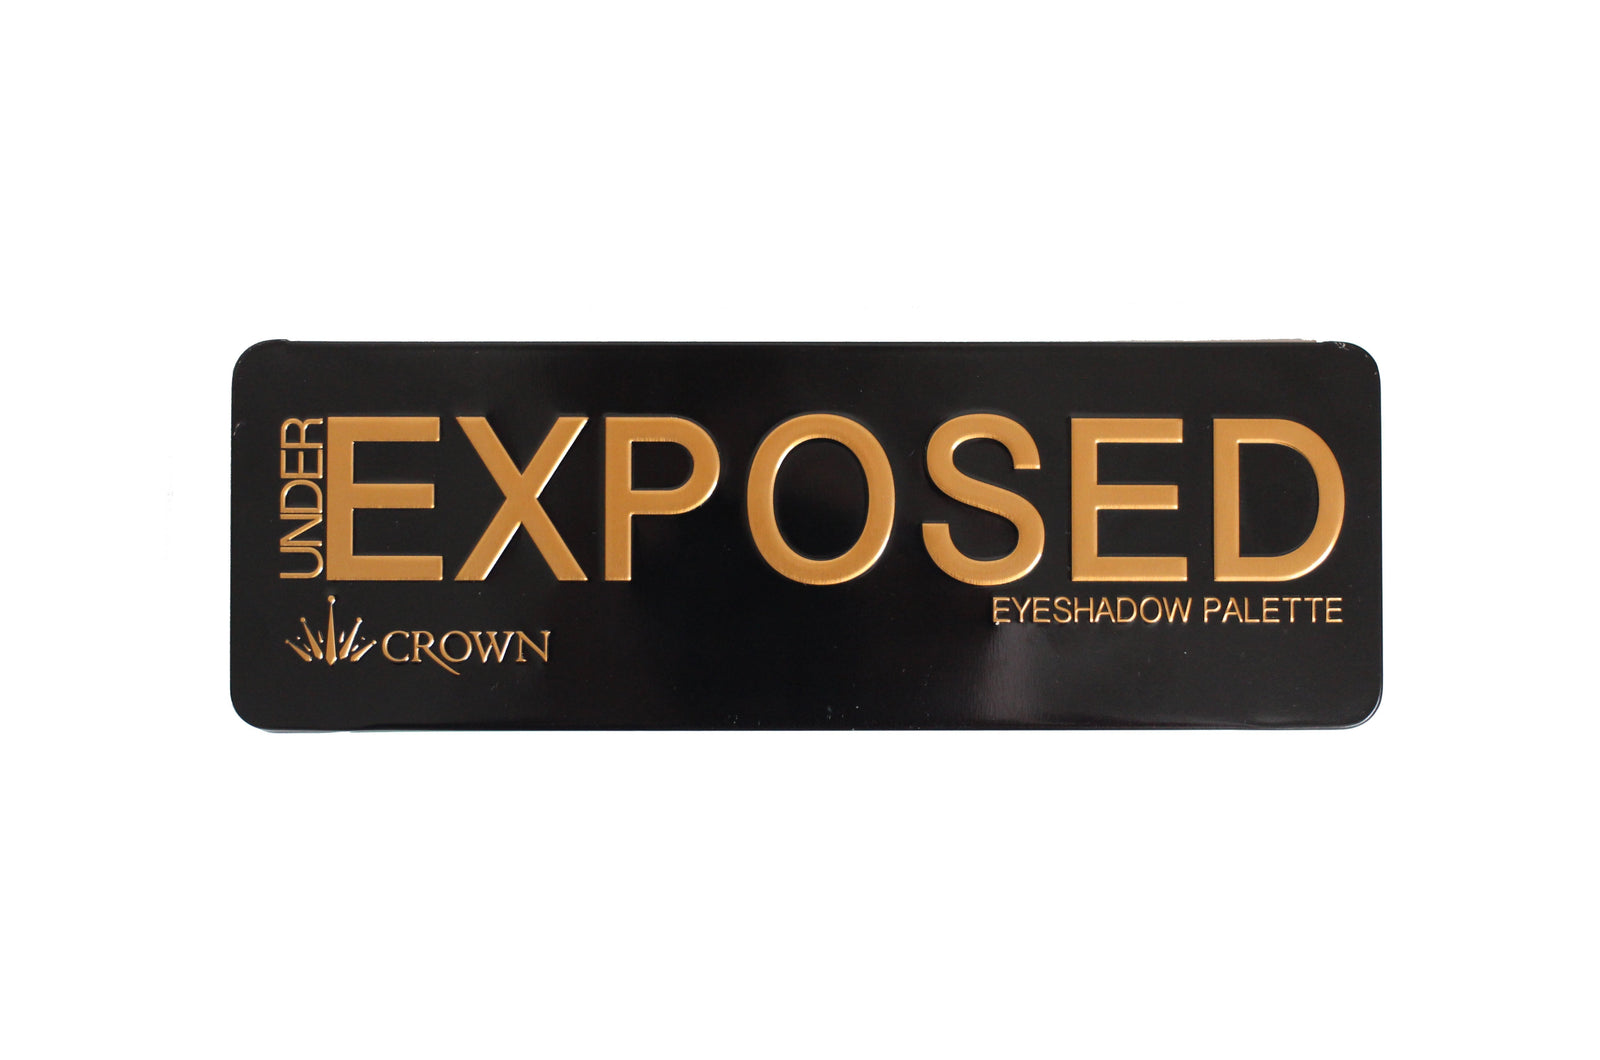 Under Exposed Eyeshadow Palette Crownbrush